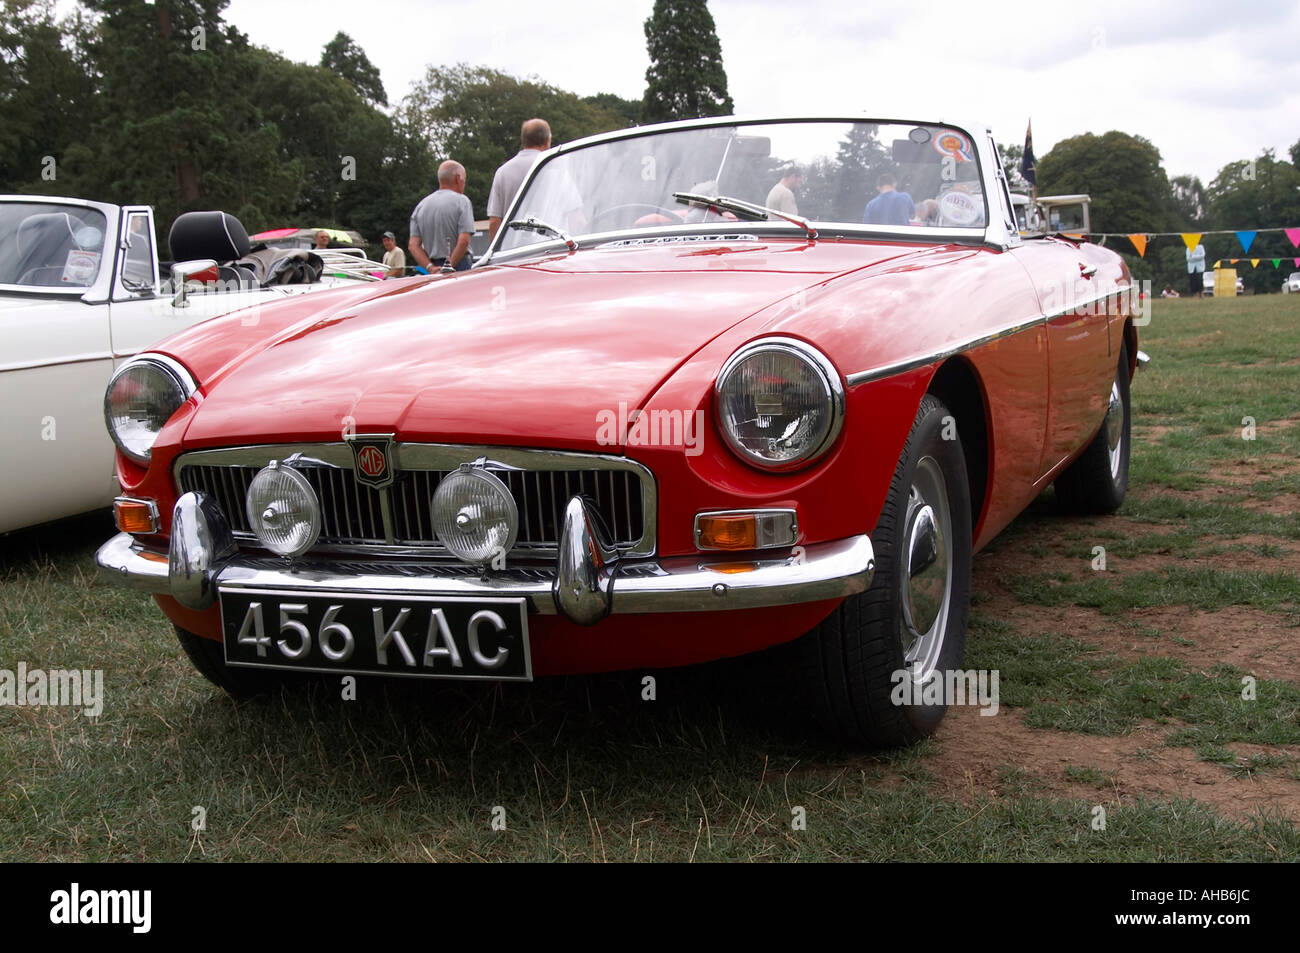 Wire Wheels Stock Photos Images Alamy British Leyland Radio Wiring Mgb Roadster English Sportscar Model